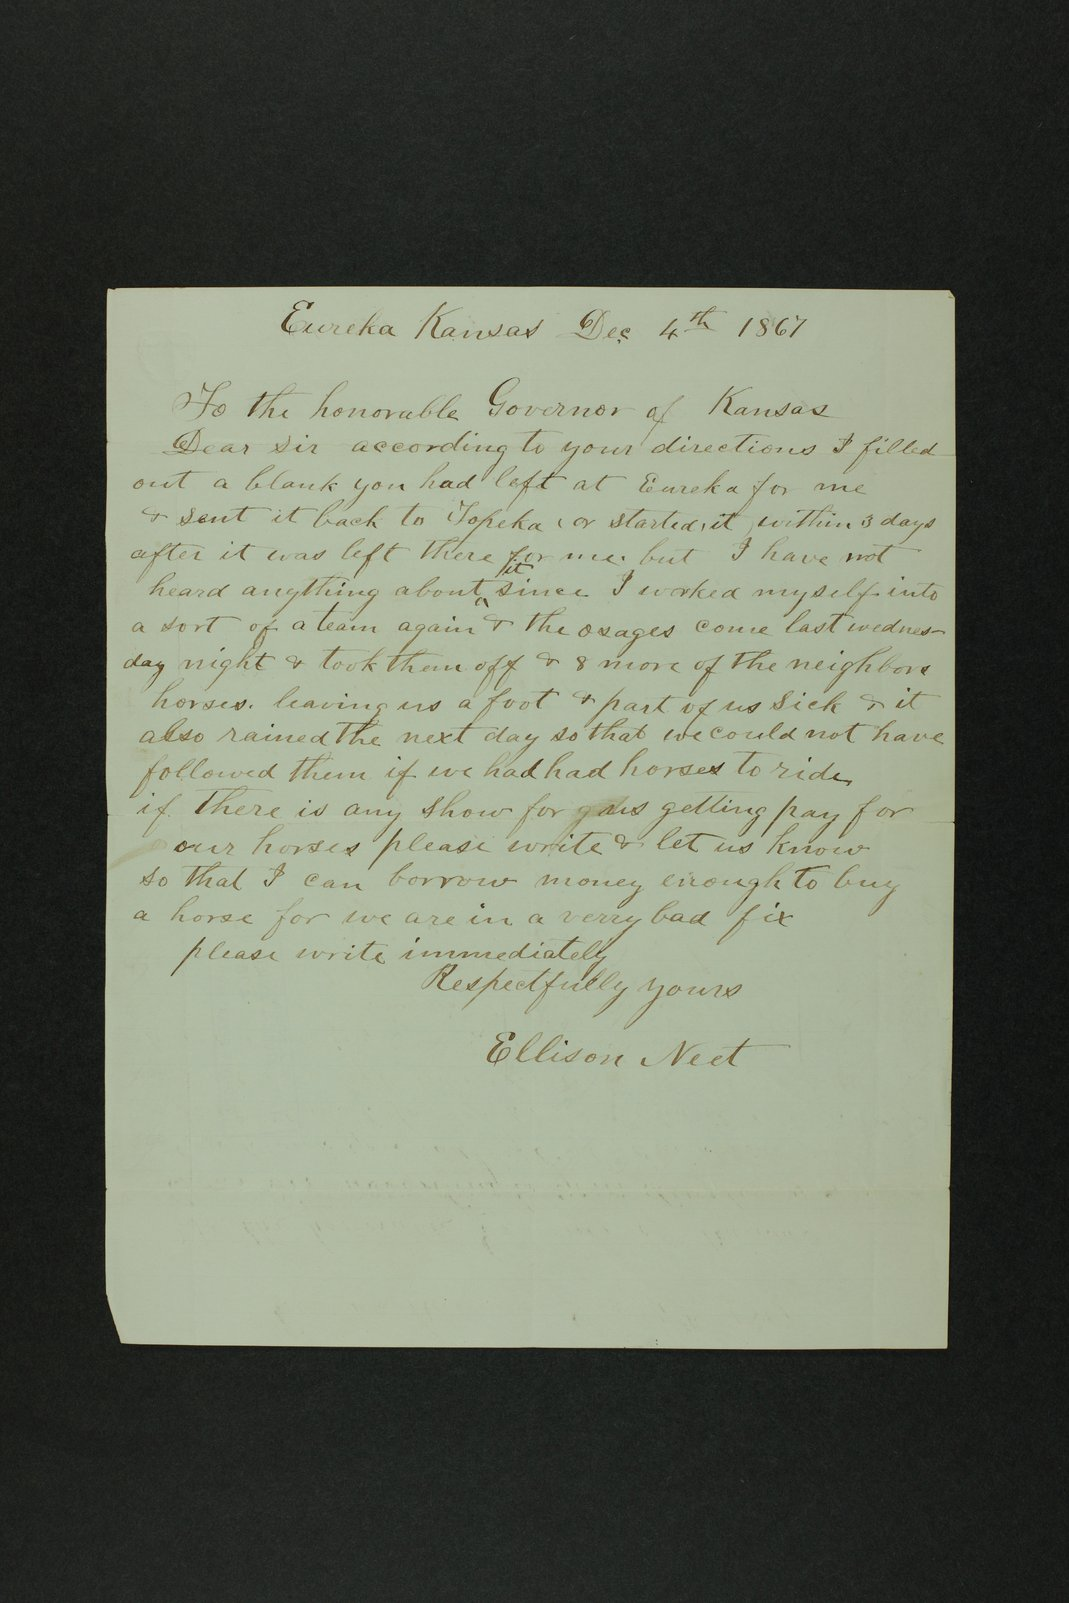 Governor Crawford Indian correspondence - 9